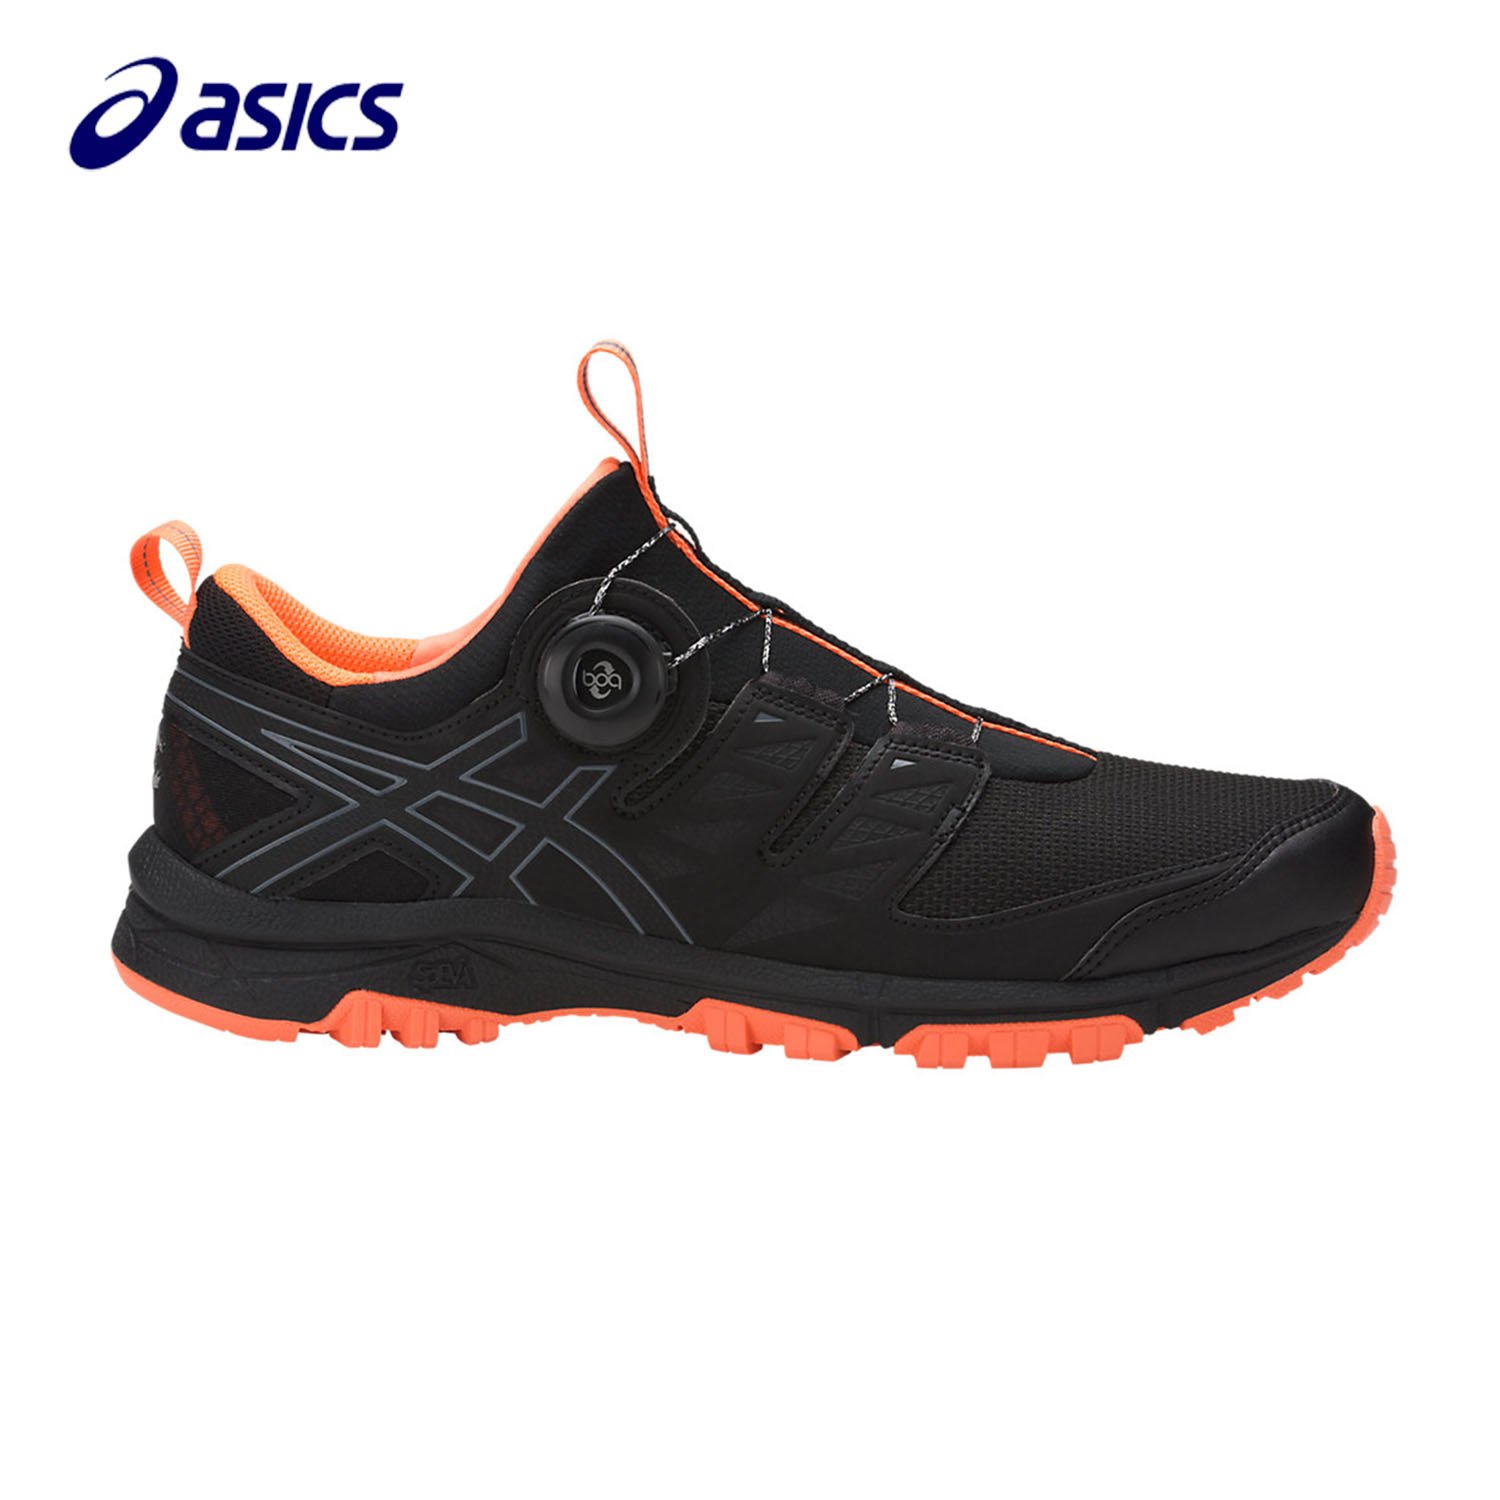 Orginal ASICS  new running shoes men's Breathable buffer Shoes Classic Outdoor Tennis Shoes  Leisure Non-slip T7F2N-9097 kelme 2016 new children sport running shoes football boots synthetic leather broken nail kids skid wearable shoes breathable 49